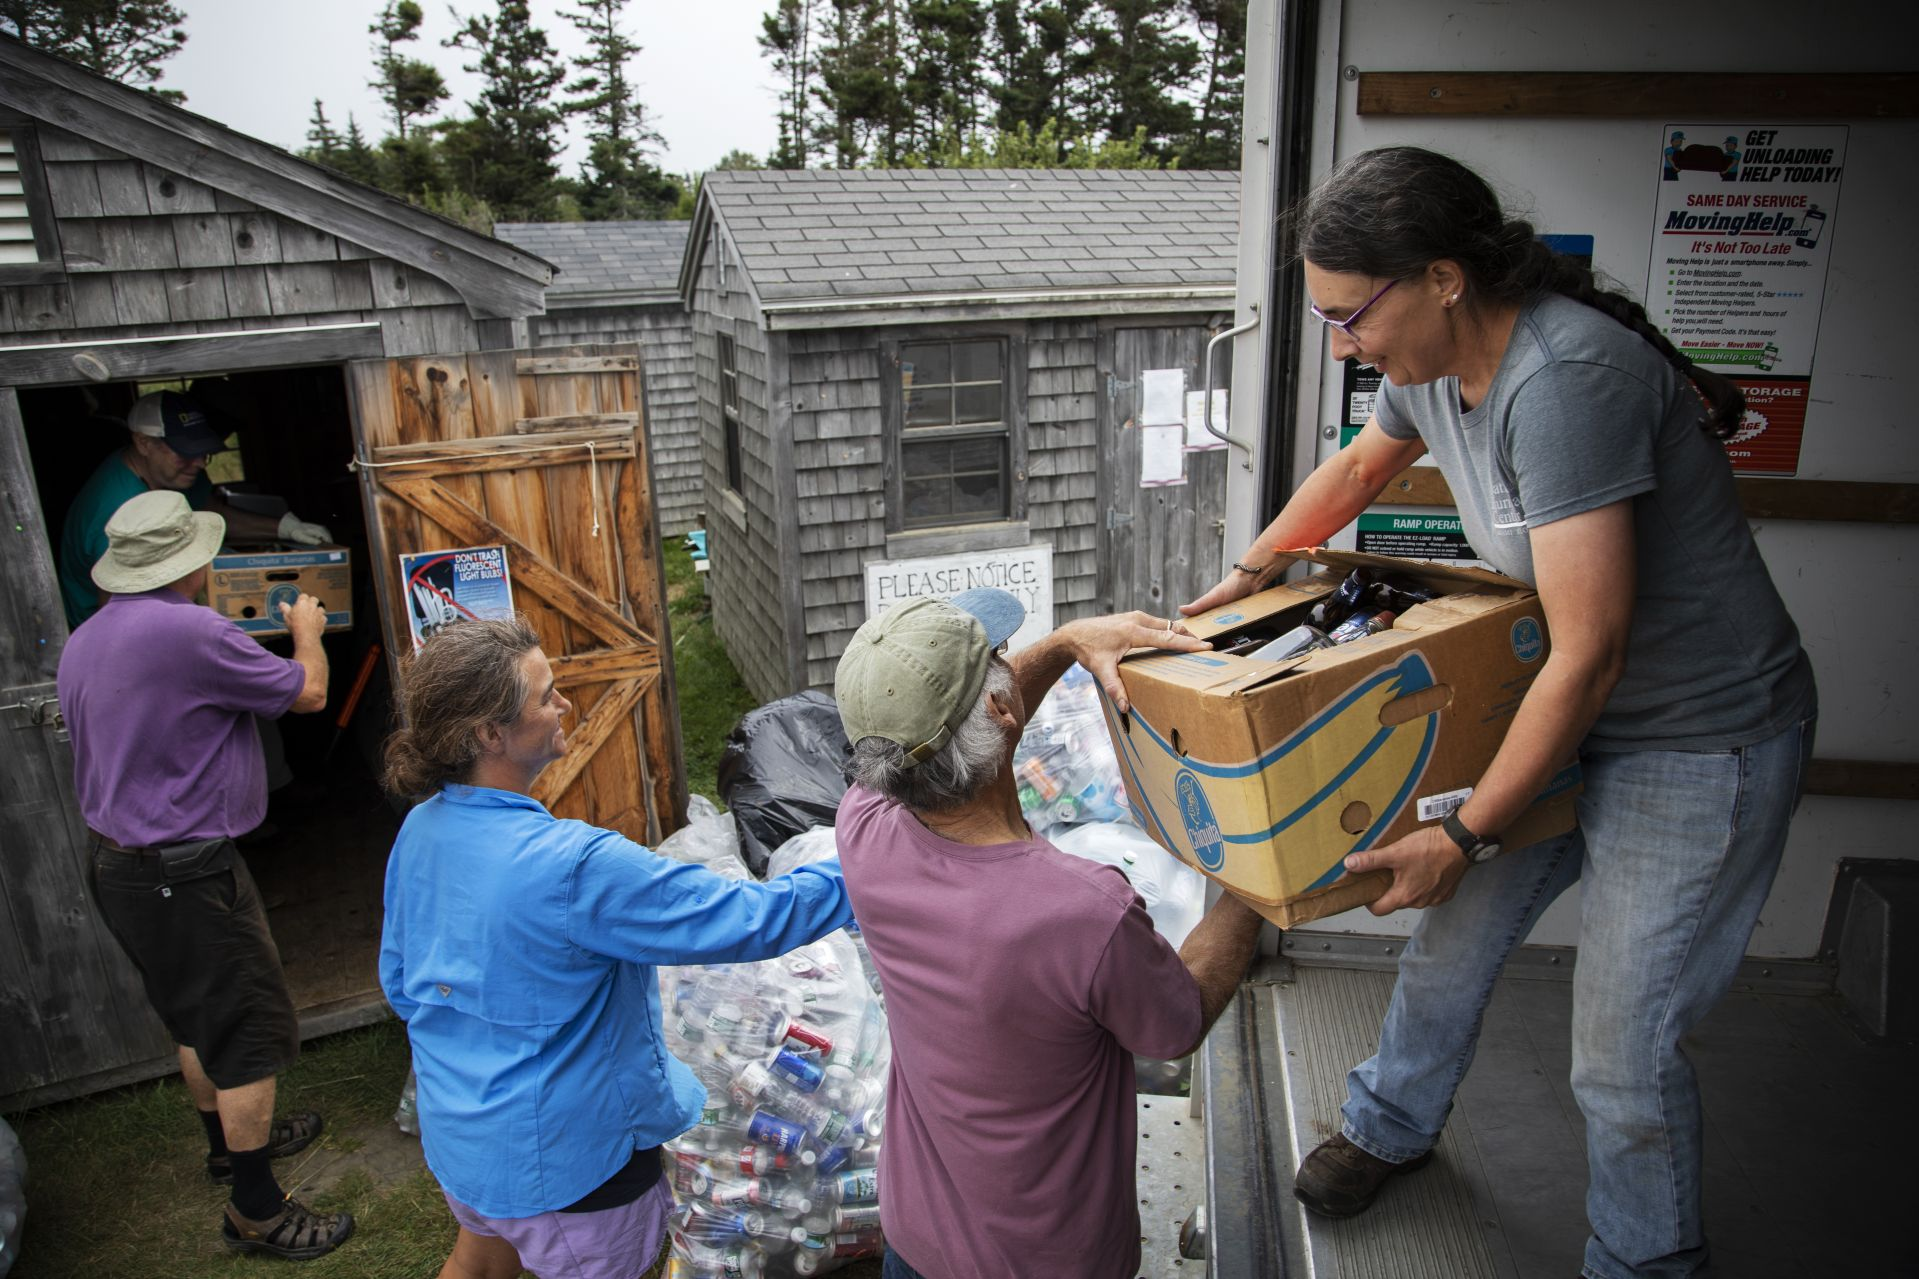 Eva Meltzer Murray Õ85 leads residents on Matinicus Island while loading a U-Haul full of recycling to be delivered mainland on August 7, 2019.A book author and essayist, sheÕs been a year-round resident of Matinicus Island for more than 30 years, starting as a teacher and now a leading island citizen involved in many island issues.